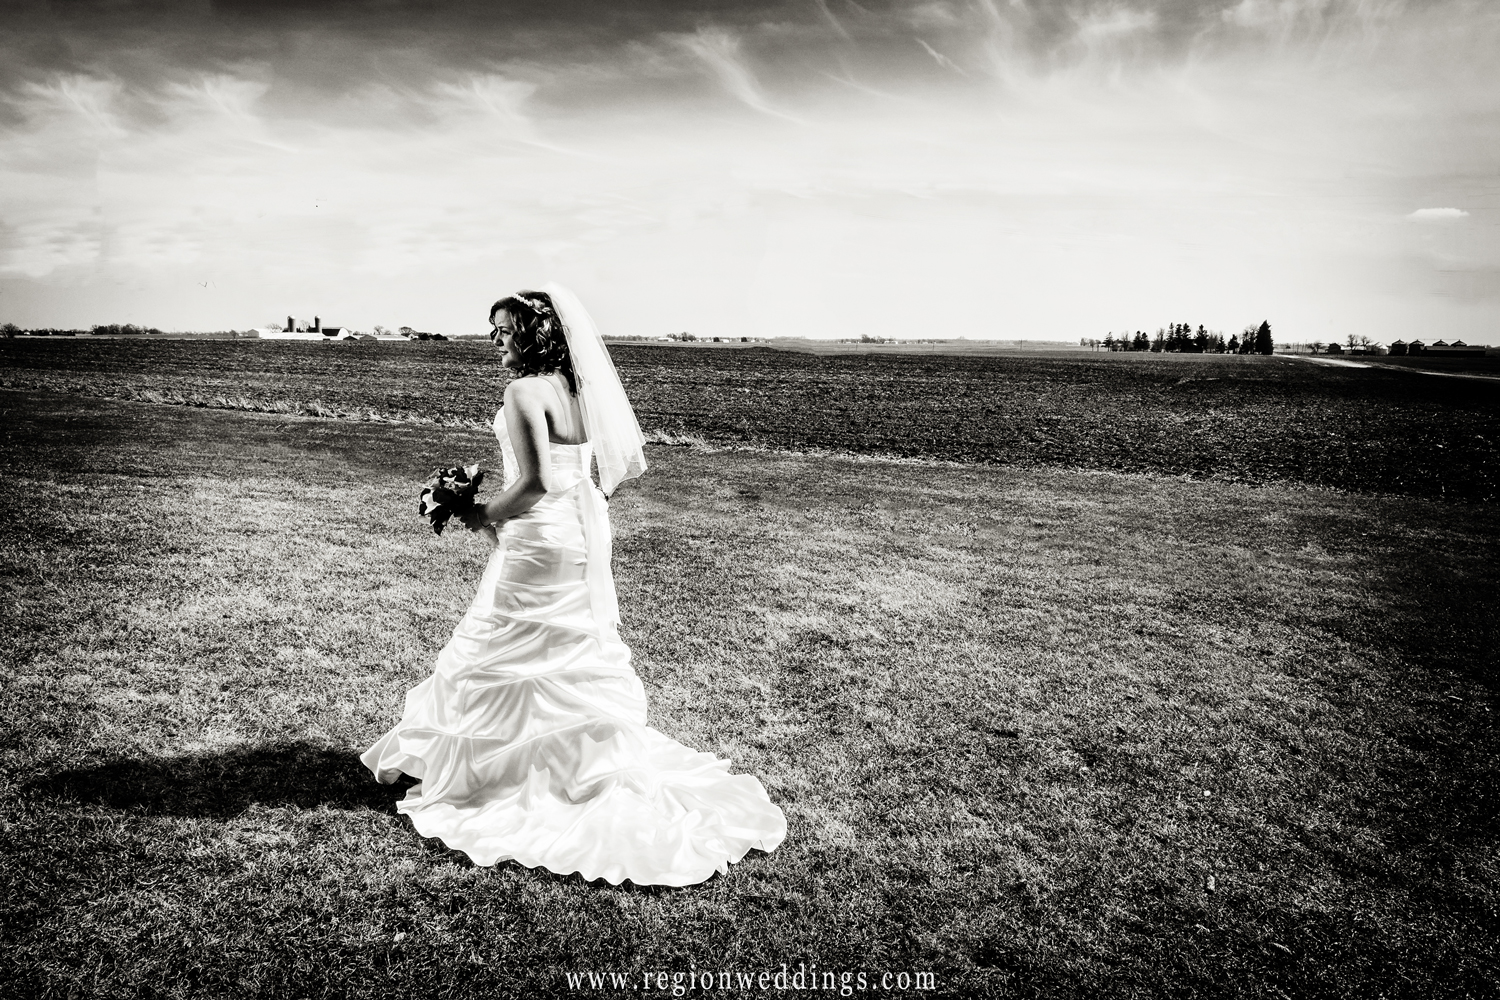 The bride looks off in the distance surrounded by Illinois farmland.